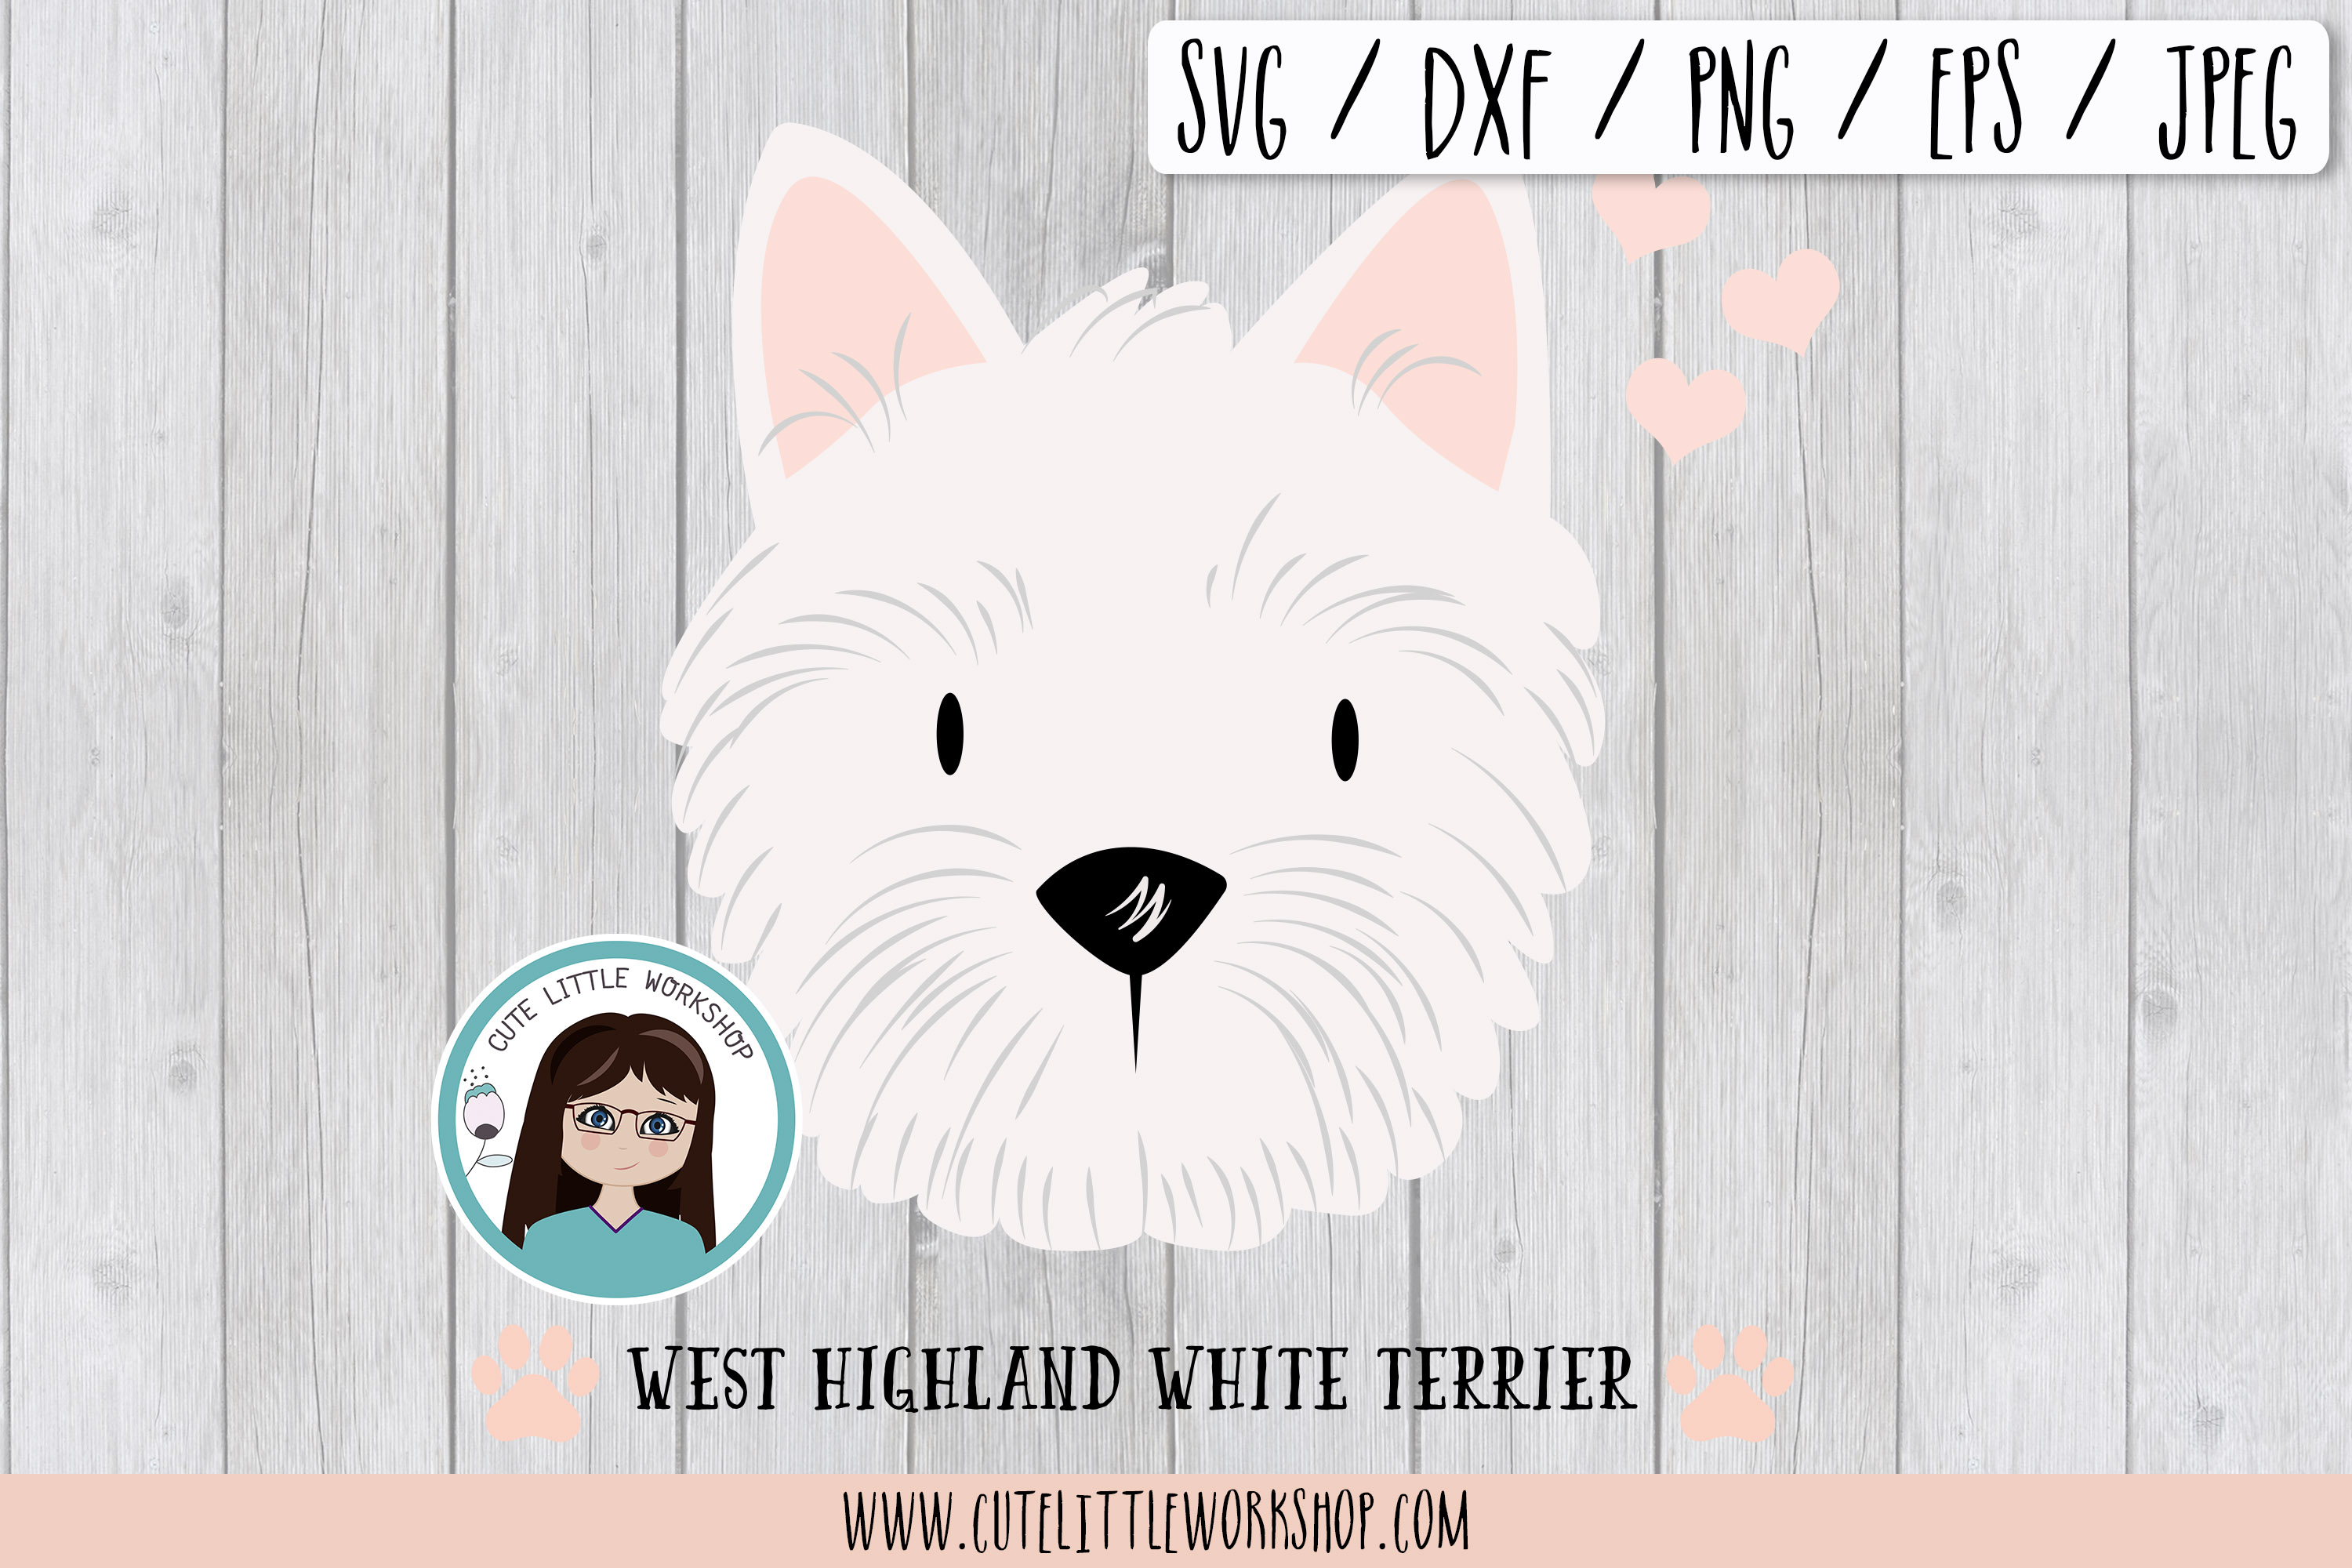 West Highland White Terrier svg, dxf, png, eps example image 1